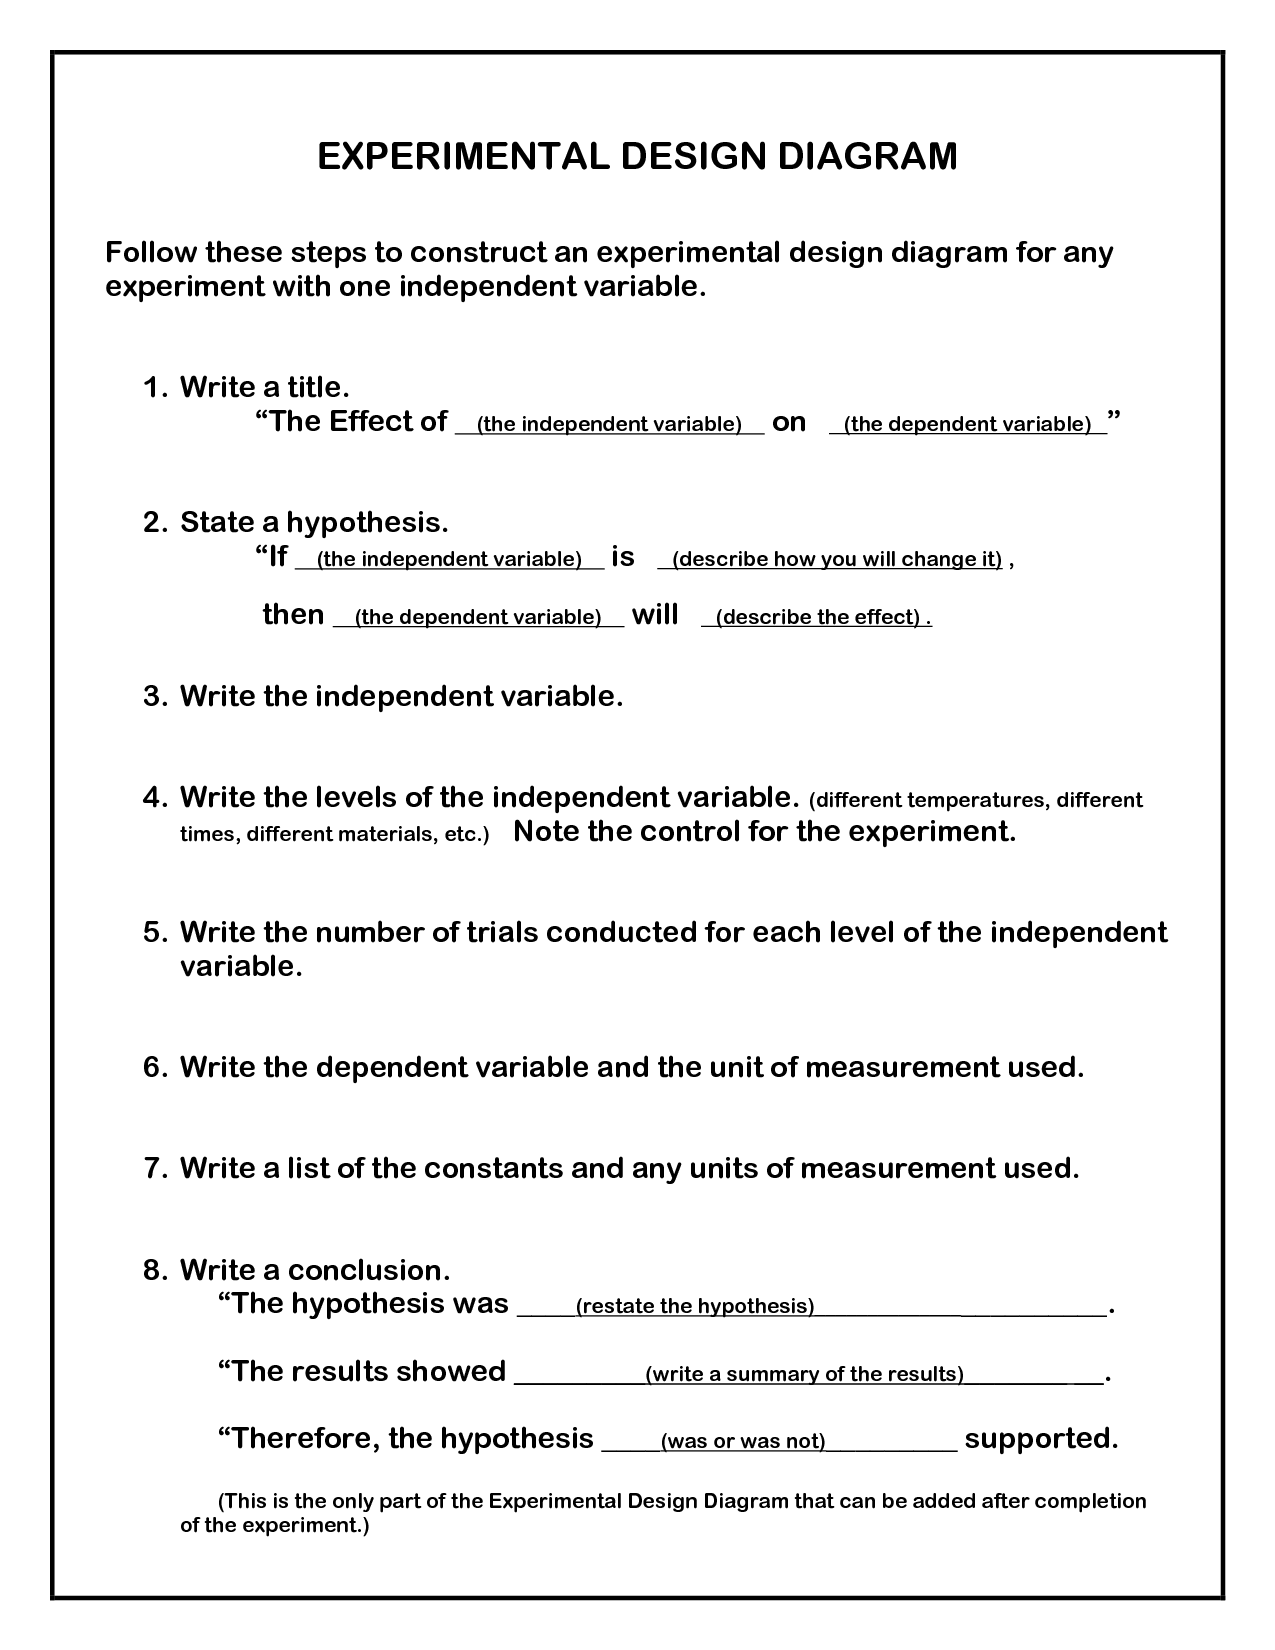 Worksheets Experimental Design Worksheet Scientific Method Answer Key how to design an experiment ask com image search projects search